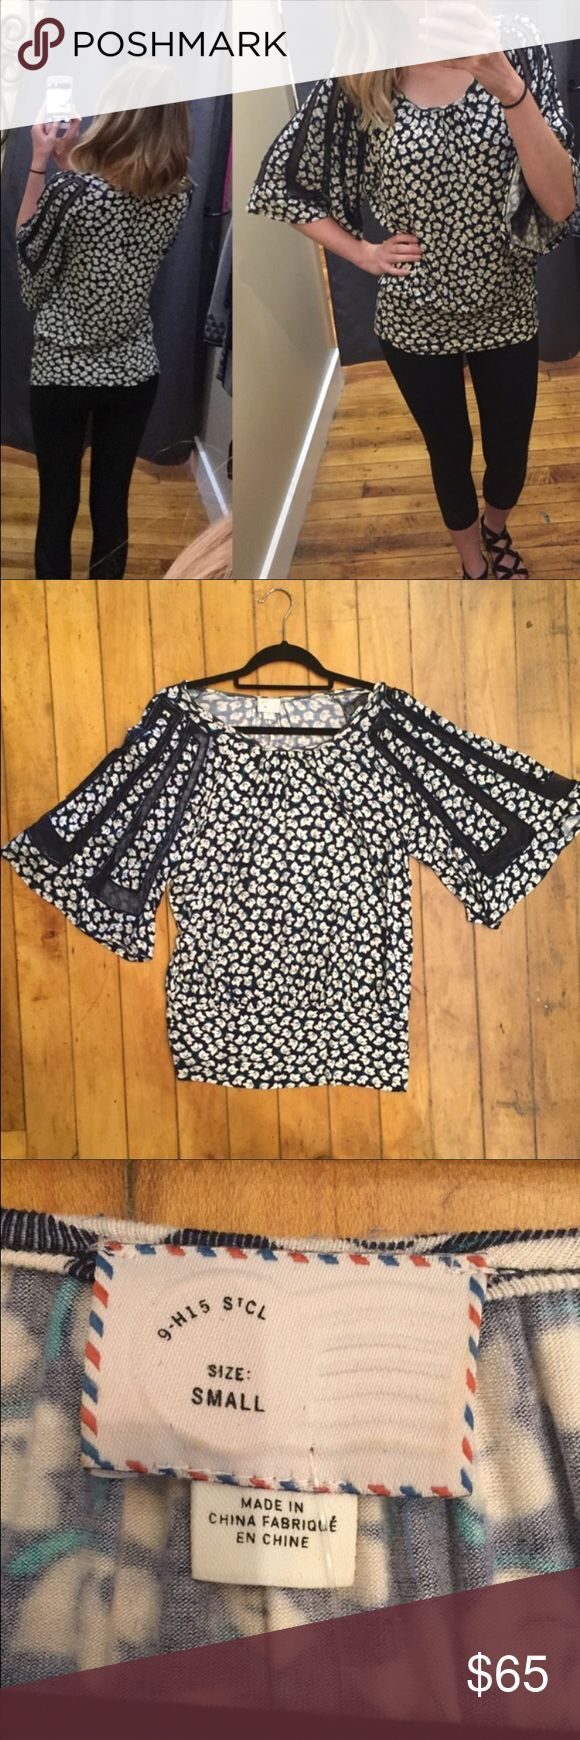 Anthropologie brand blue floral tunic size small ⚜️I love receiving offers through the offer button!⚜️ Great condition, as seen in pictures! Fast same or next day shipping!📨 Open to offers but I don't negotiate in the comments so please use the offer button😊 dimensions: sleeve length- 17 inches, length from the top of the shoulder to the very end of this tunic is 27 inches Anthropologie Tops